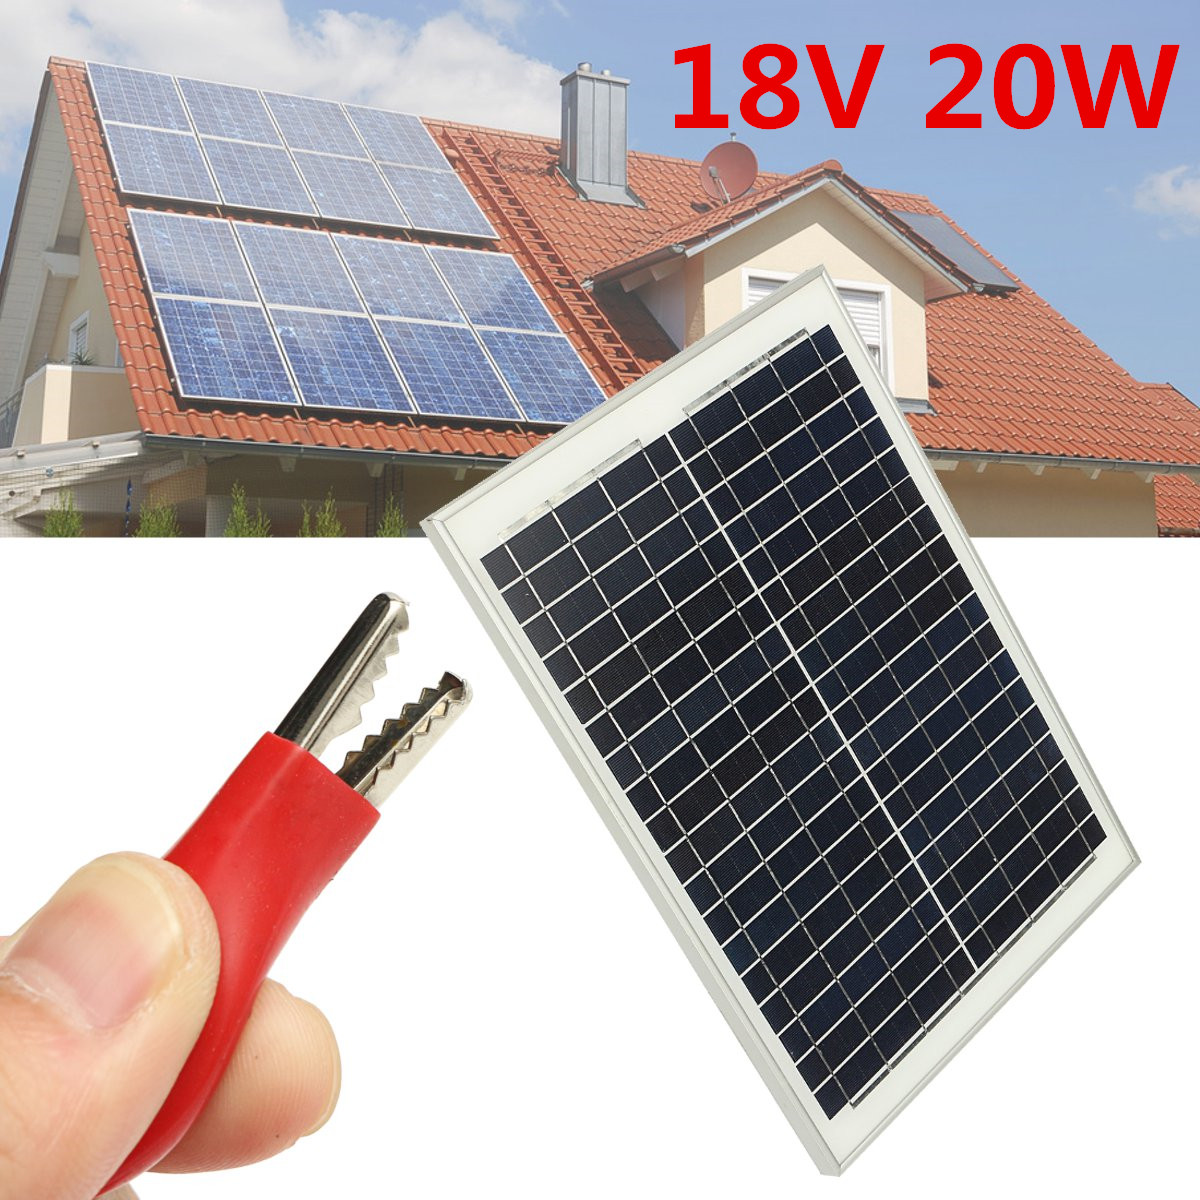 20W 18V Solar Panel Polycrystalline Solar Module Power Supply For Outdoor Fountain Pond Pool Garden Submersible Water Pump цена